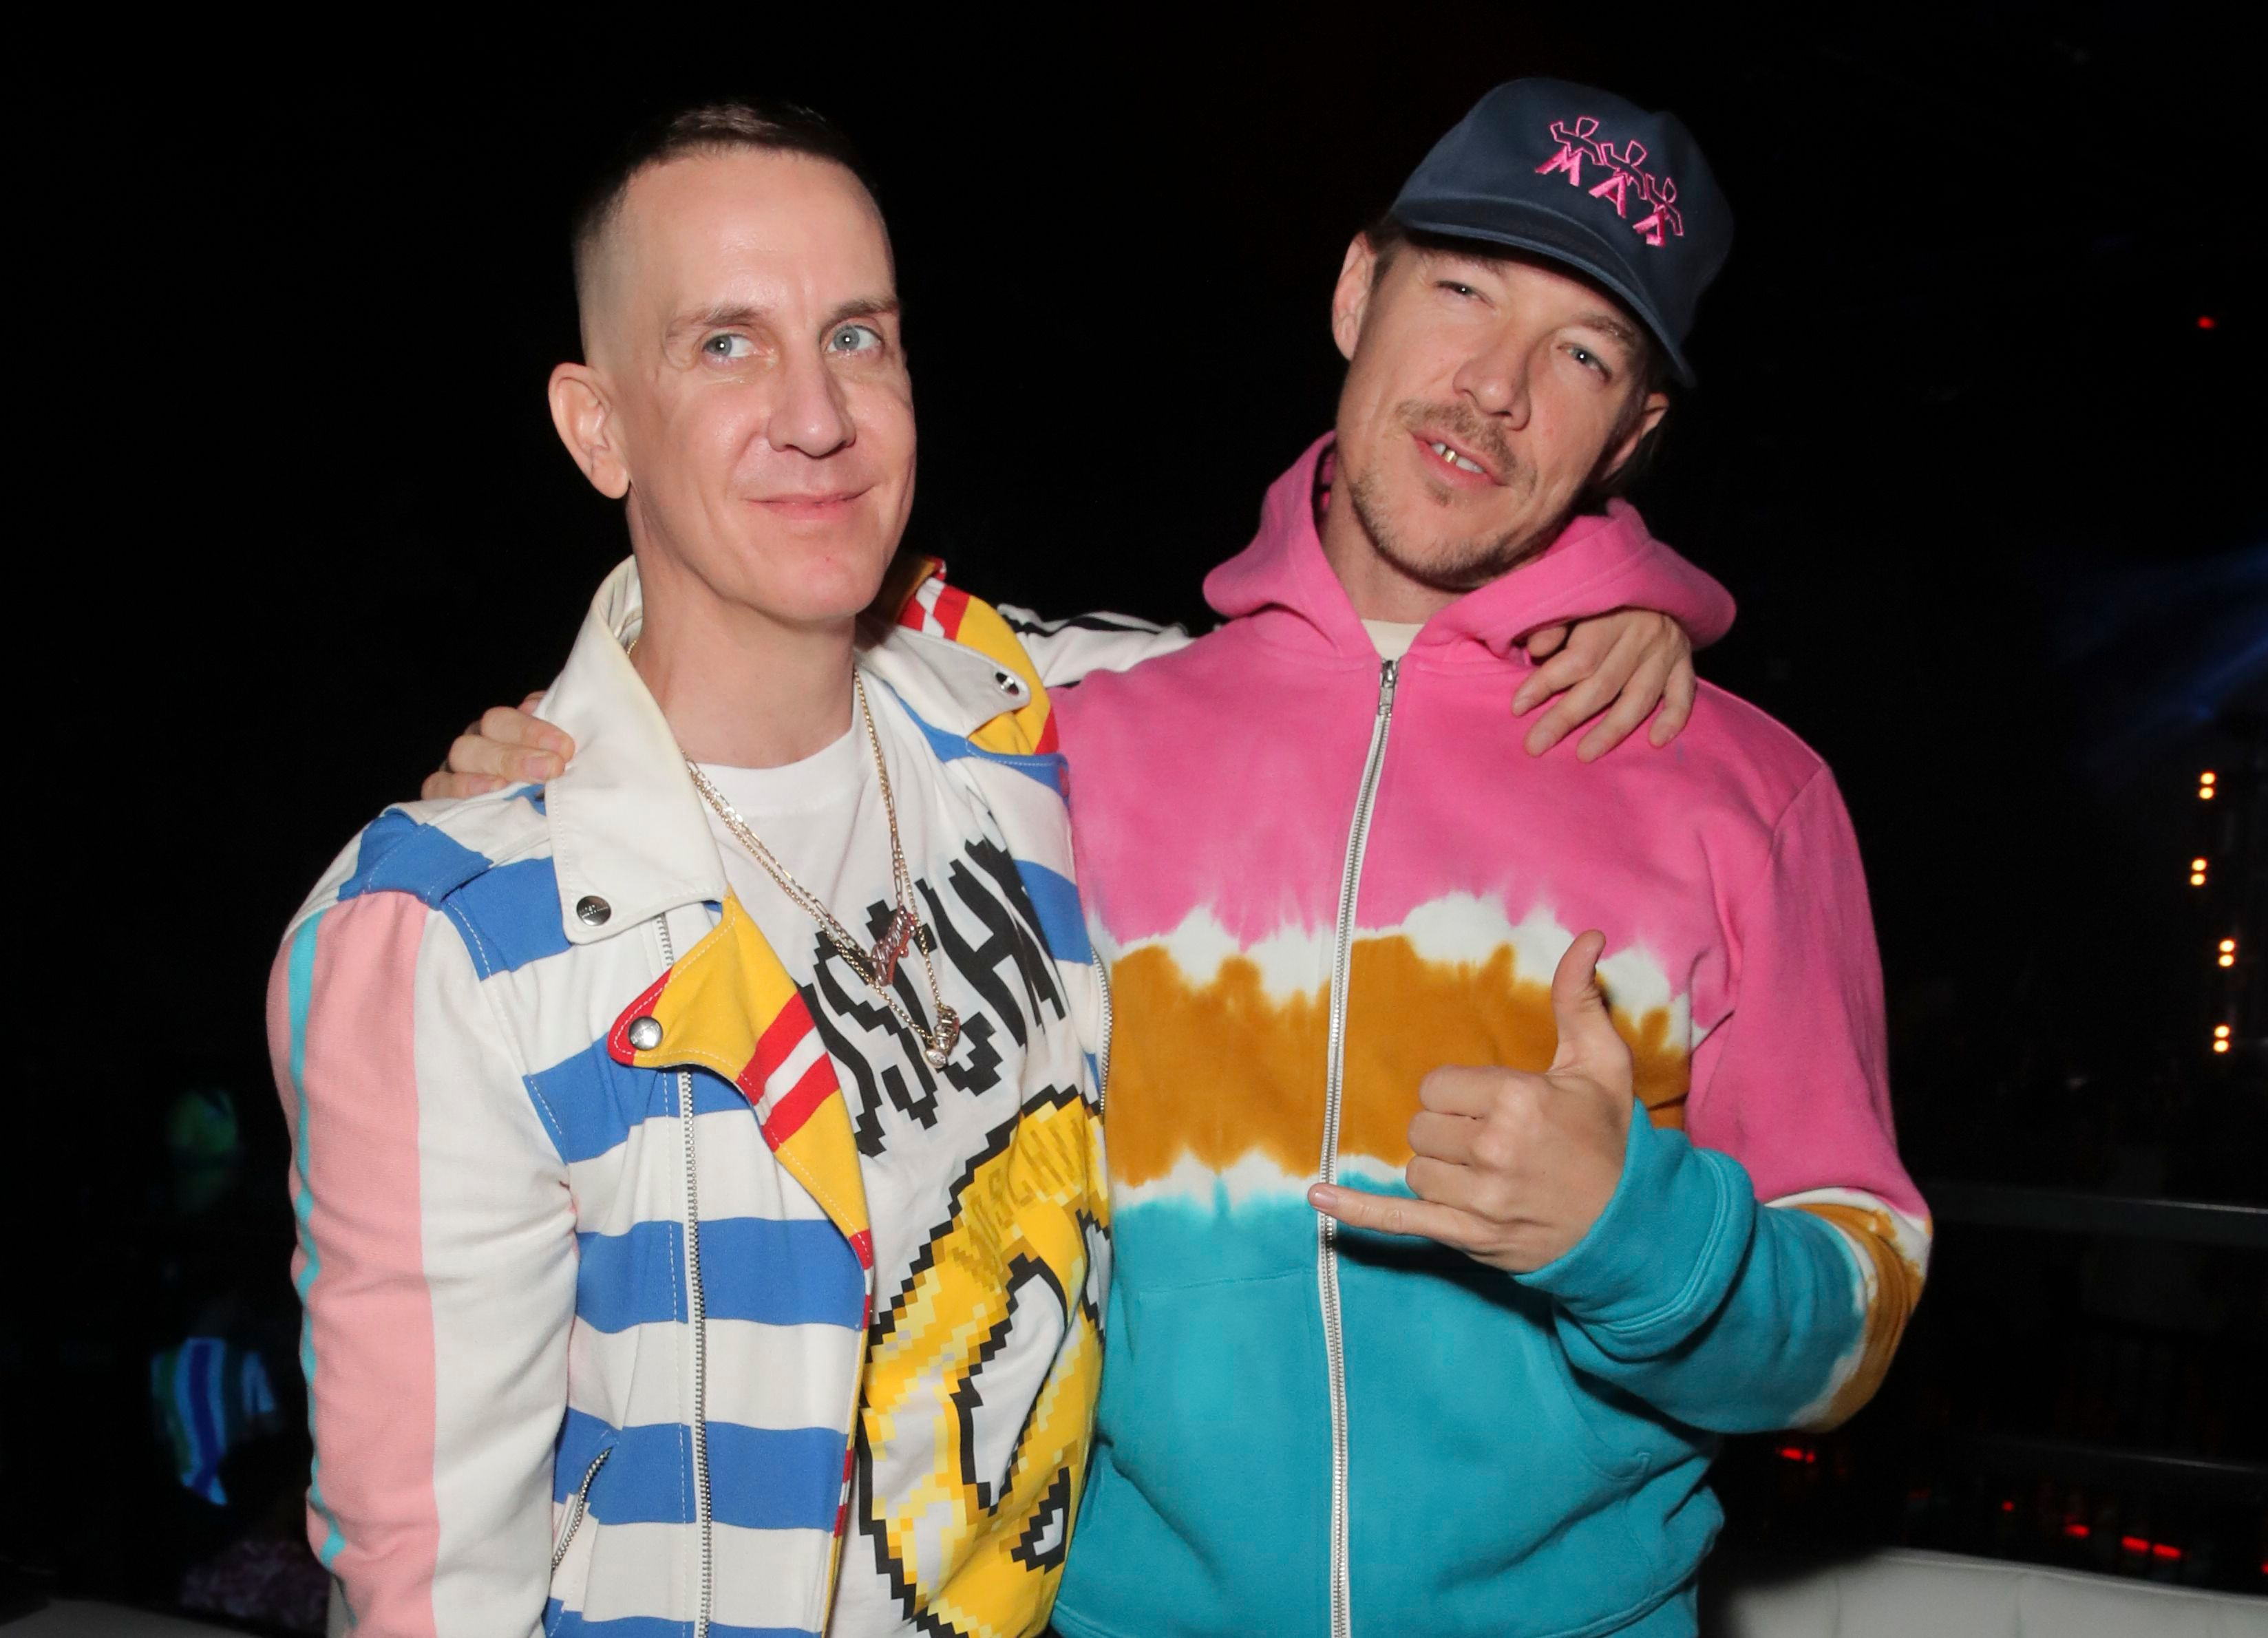 Jeremy Scott and DiploMoschino x The Sims Party, Coachella Valley Music and Arts Festival, Weekend 1, Day 2, Indio, USA - 13 Apr 2019